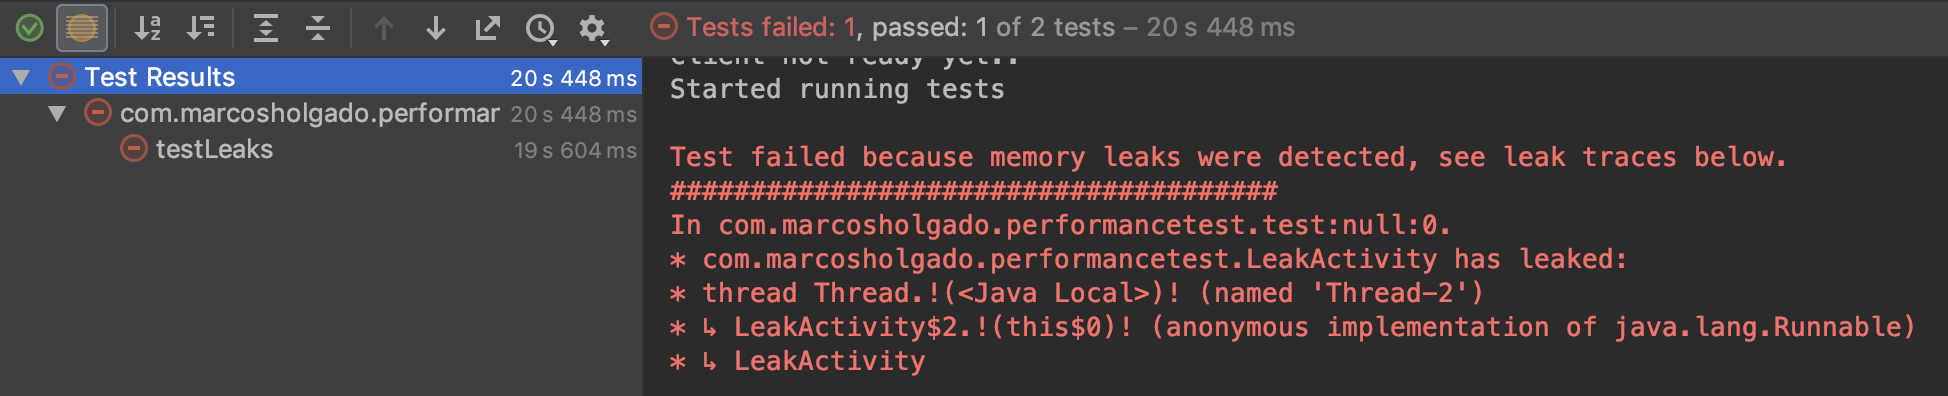 Detect memory leaks in your instrumentation tests using